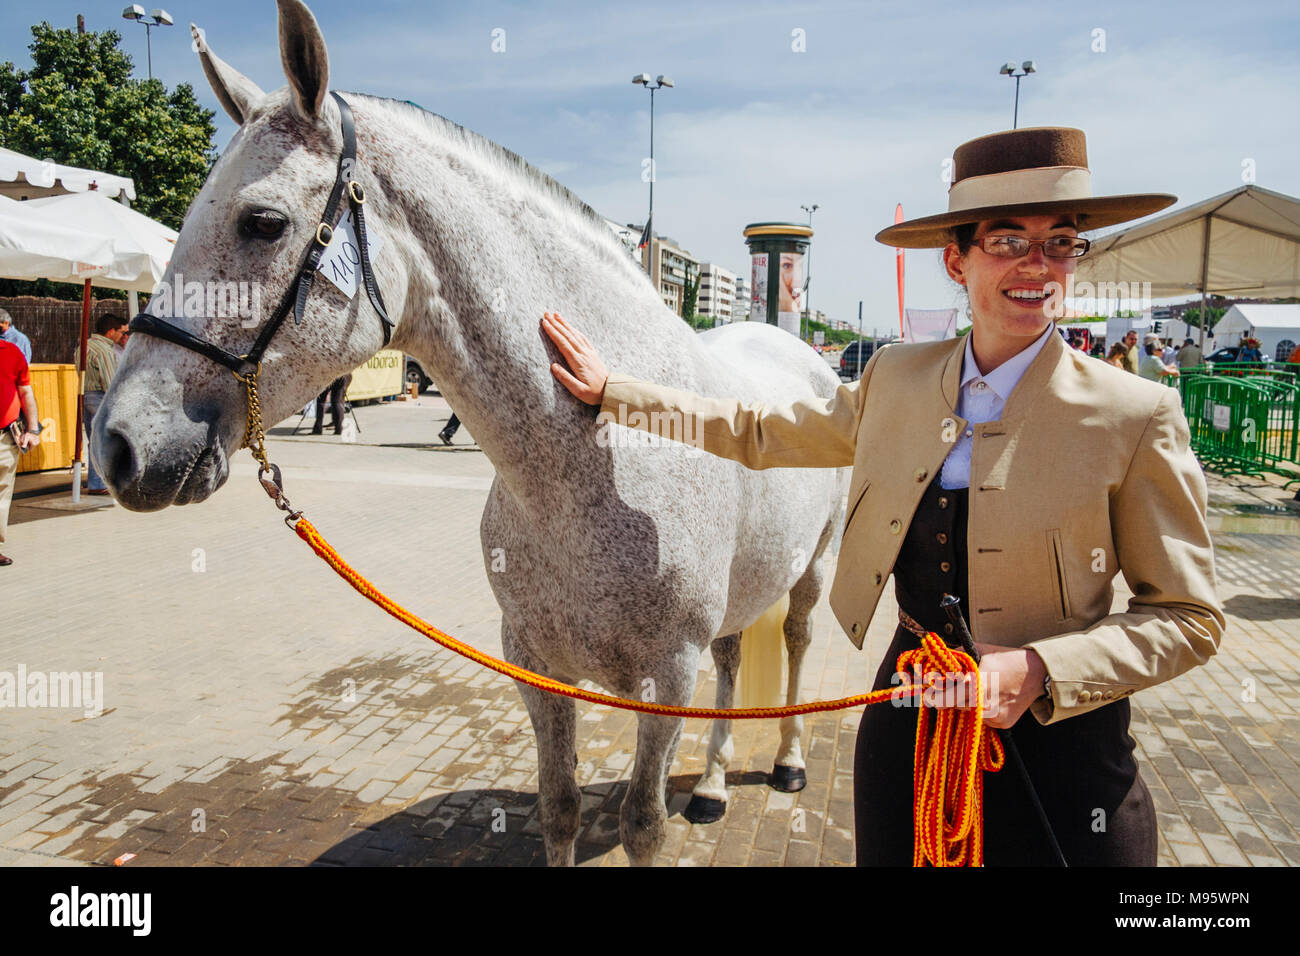 Cordoba, Andalusia, Spain : Andalusian horsewoman and thoroughbred mare at the Cordoba Horse Fair. - Stock Image